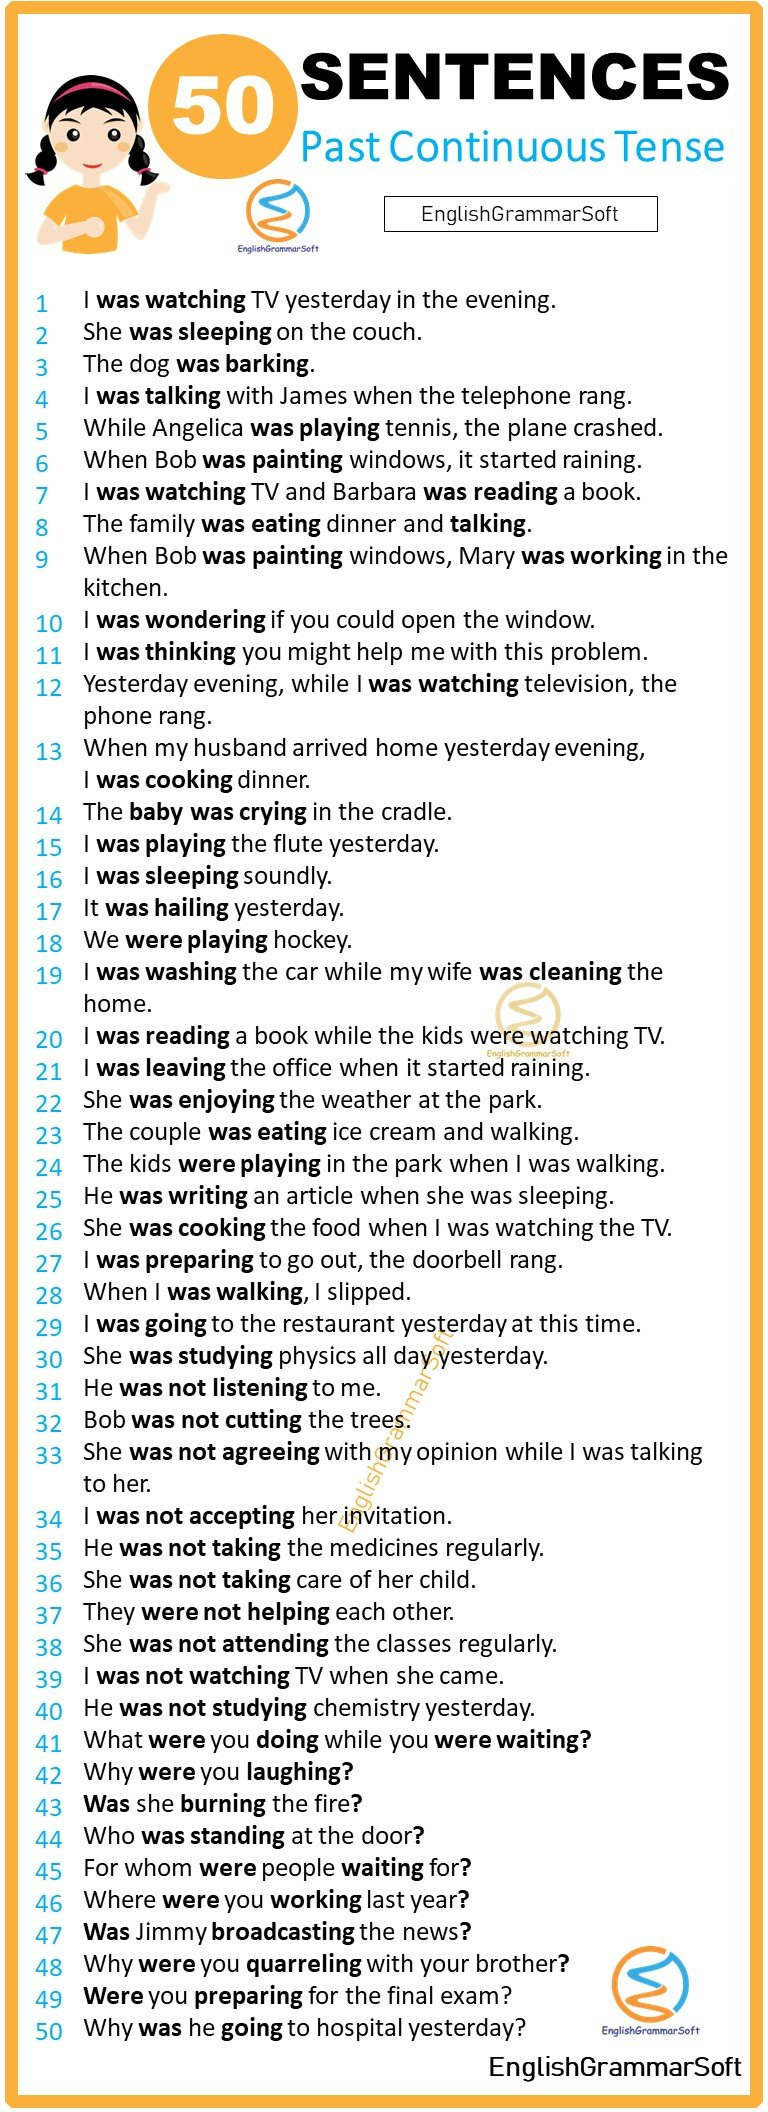 50 past continuous tense sentences examples